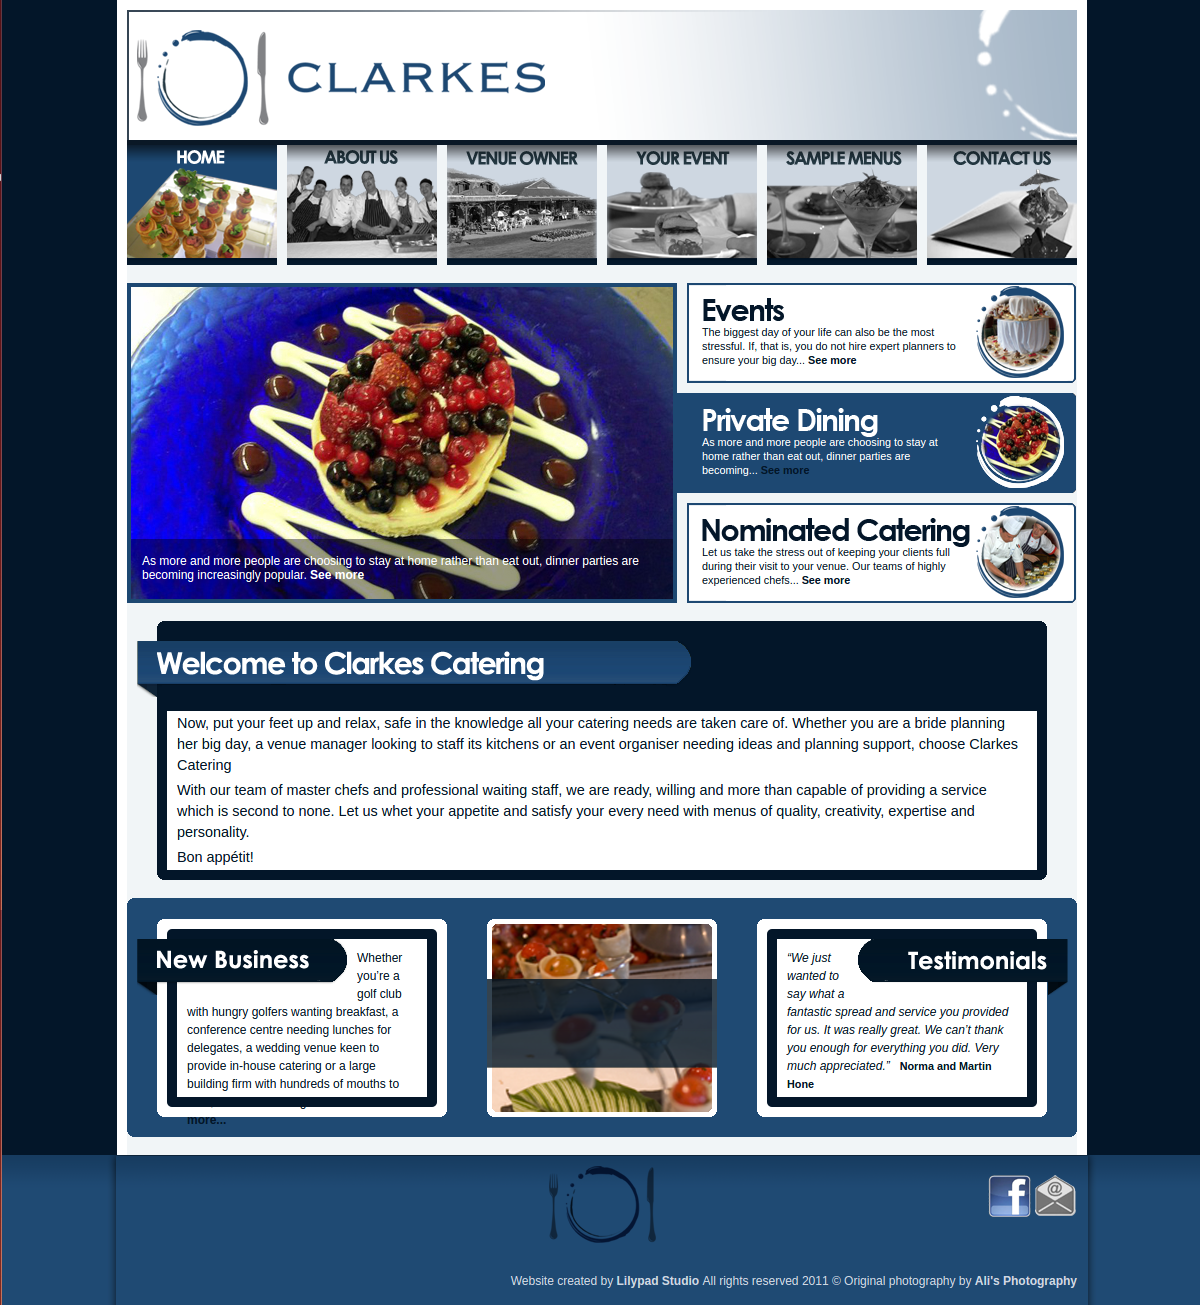 Clarkes Catering (2010)